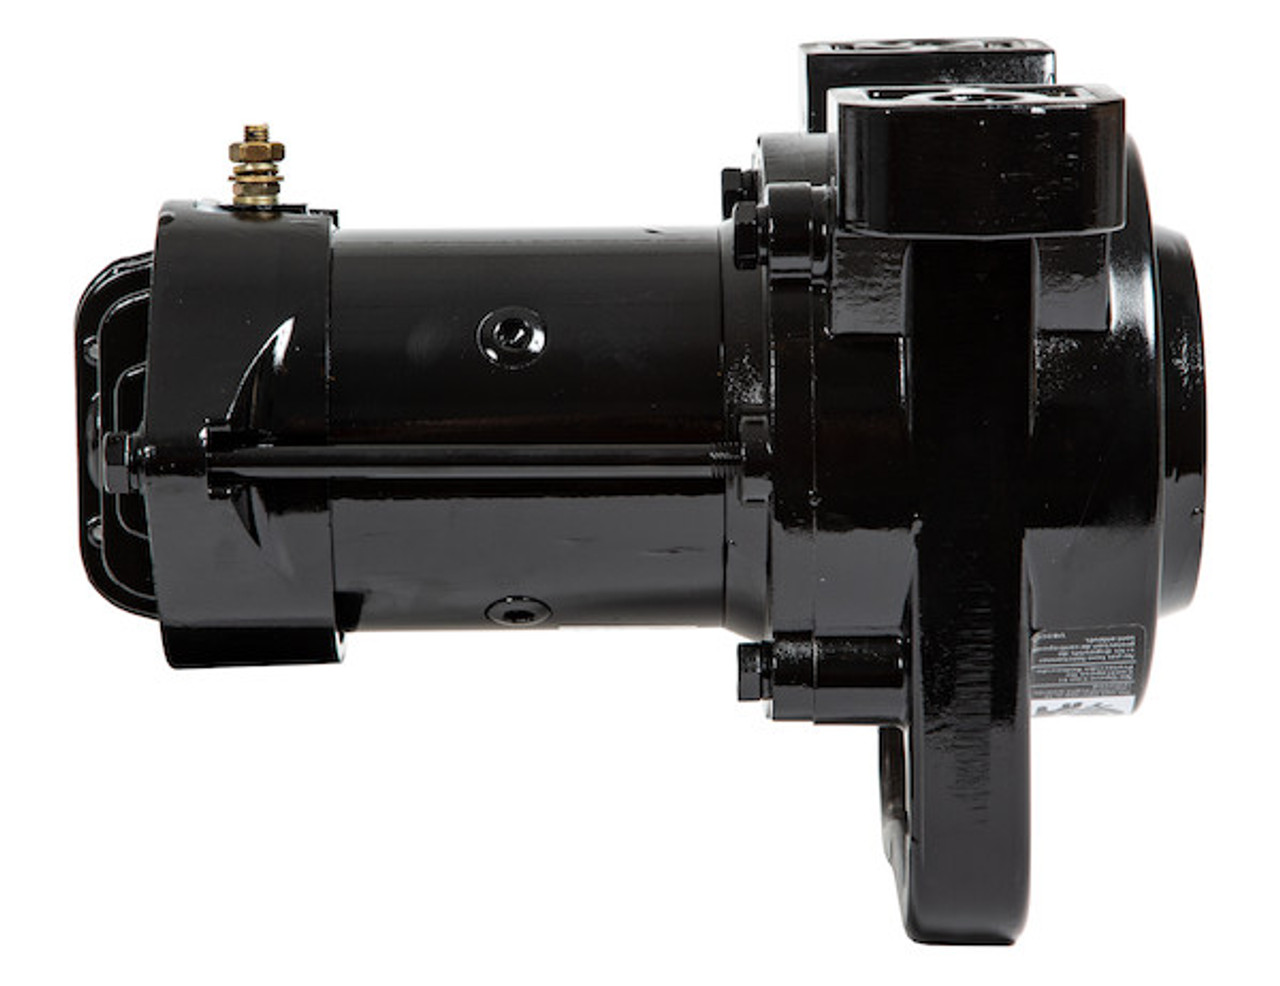 DBV25001 Buyers Salt Dogg Spreader Replacement 2500 LB VIBRATOR for 1406657SSH Picture #3